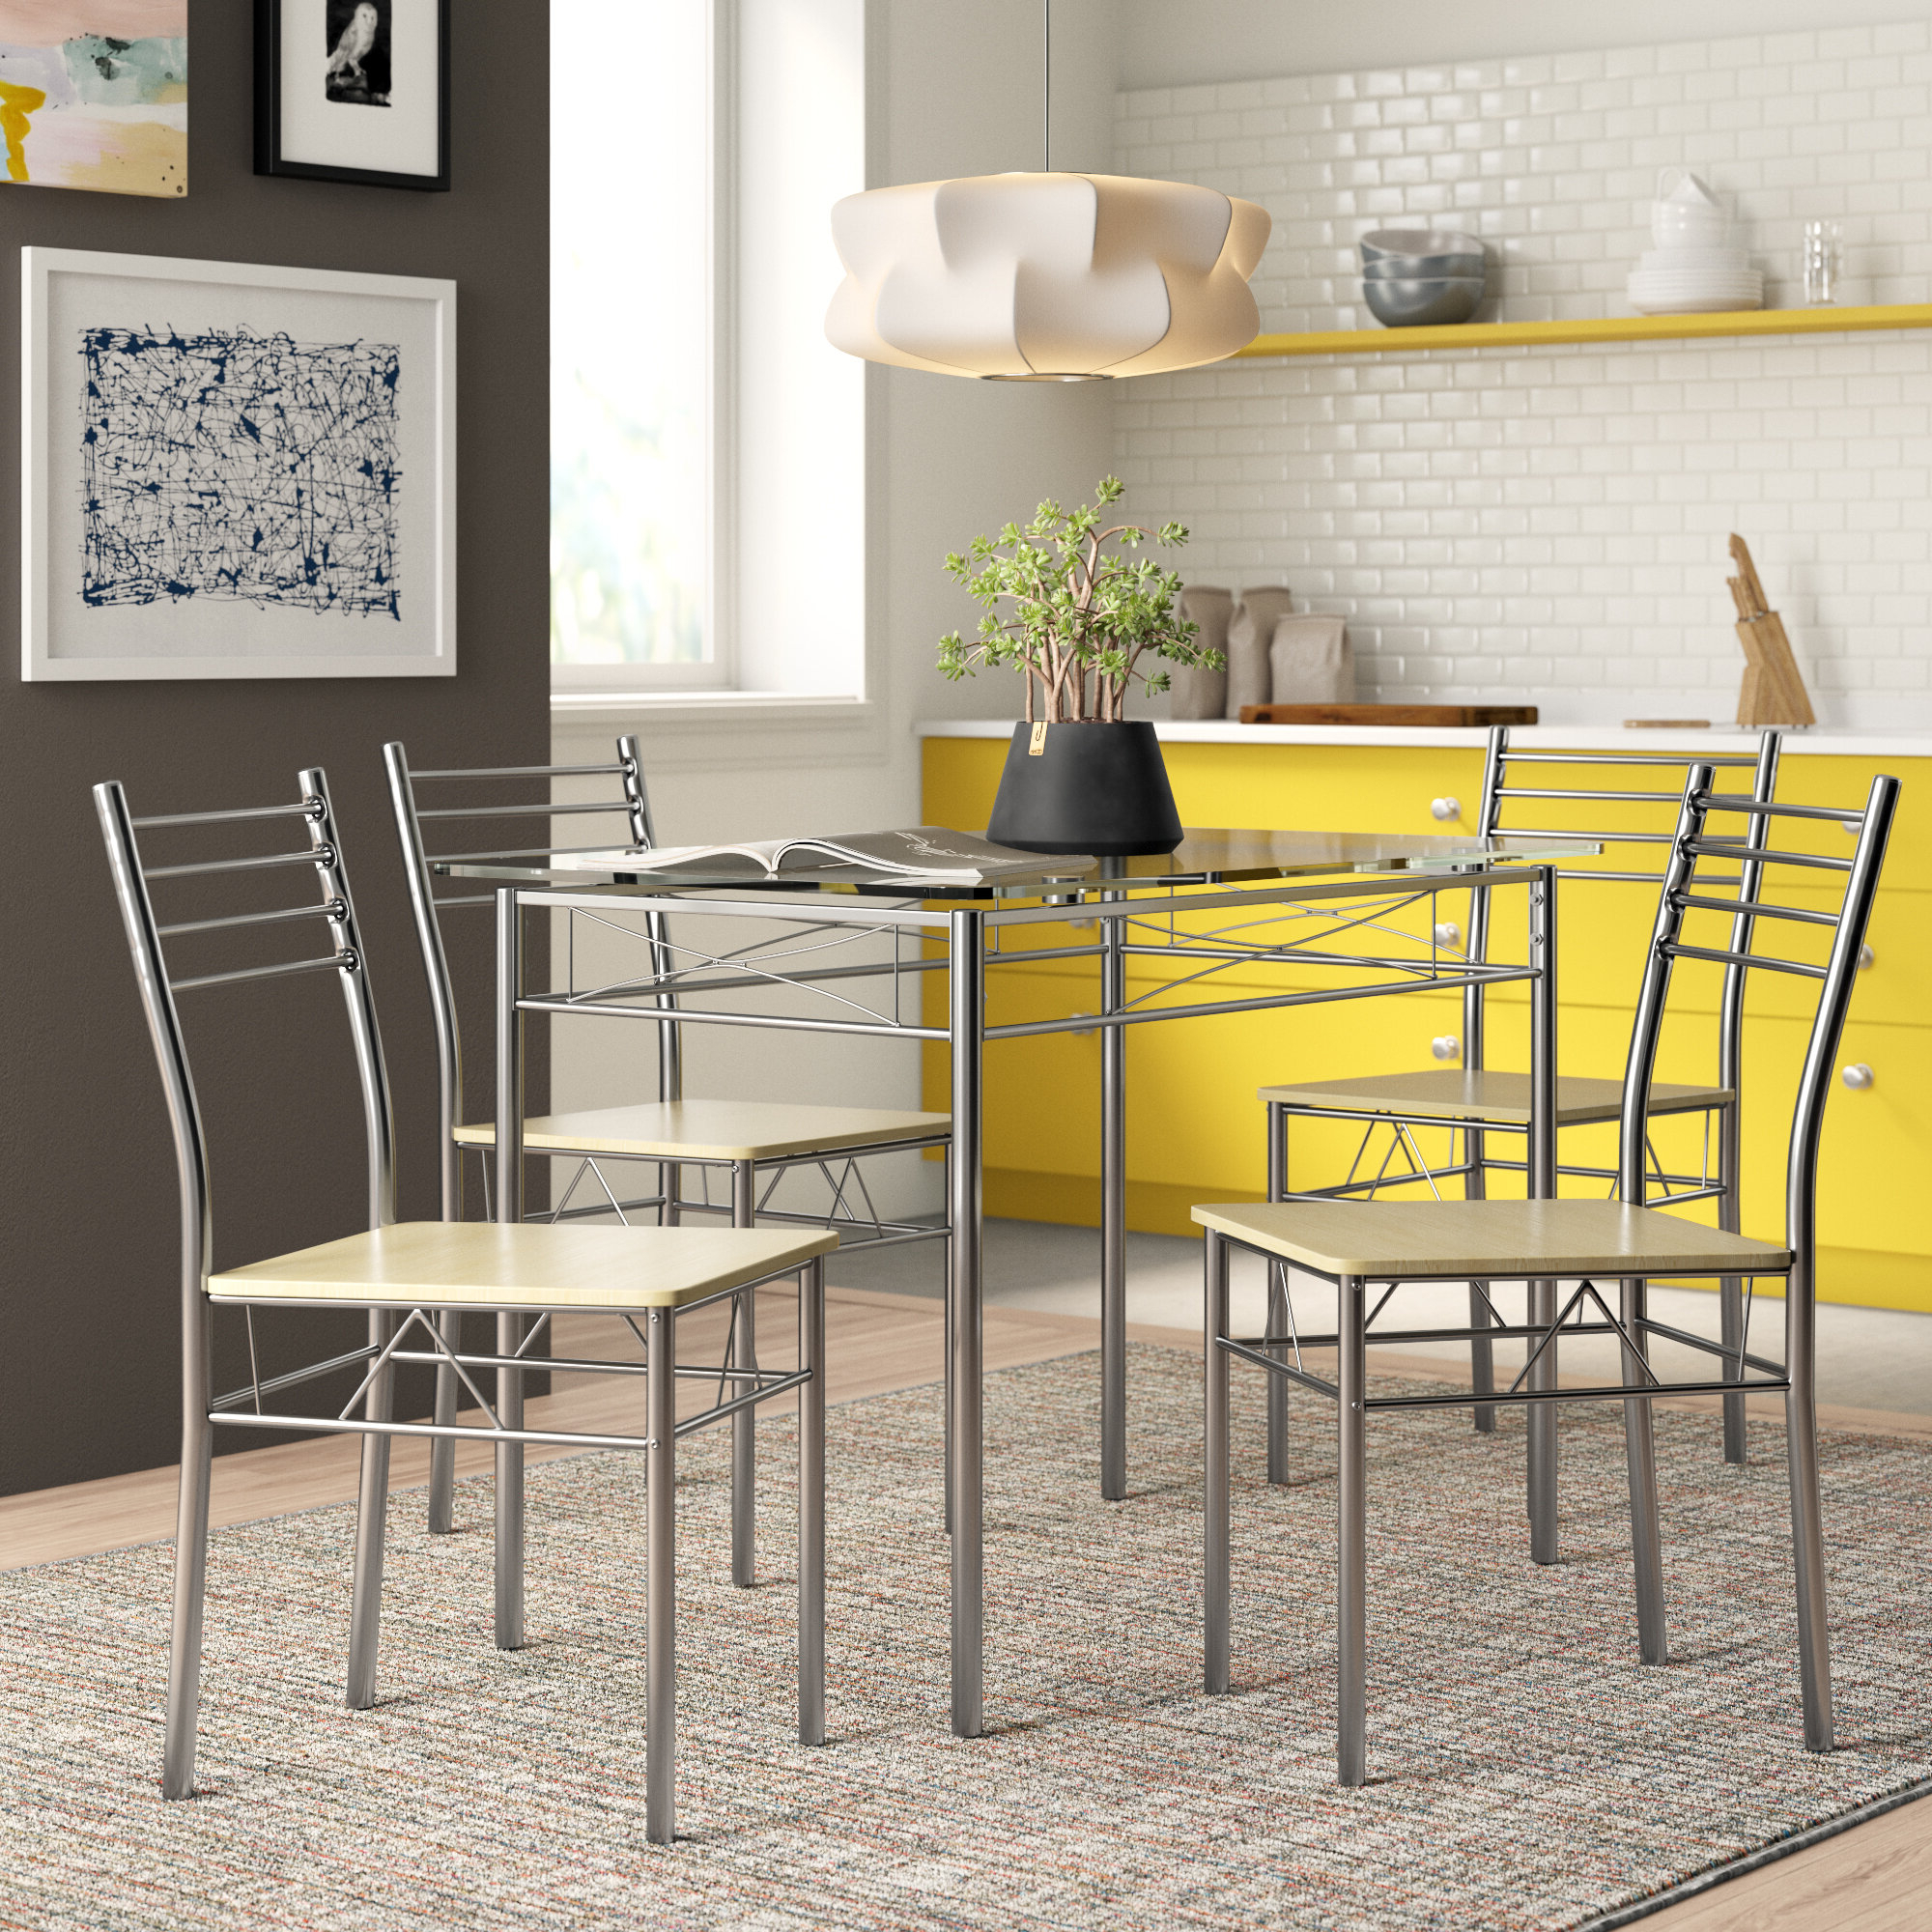 2019 Zipcode Design North Reading 5 Piece Dining Table Set & Reviews Throughout Noyes 5 Piece Dining Sets (View 23 of 25)